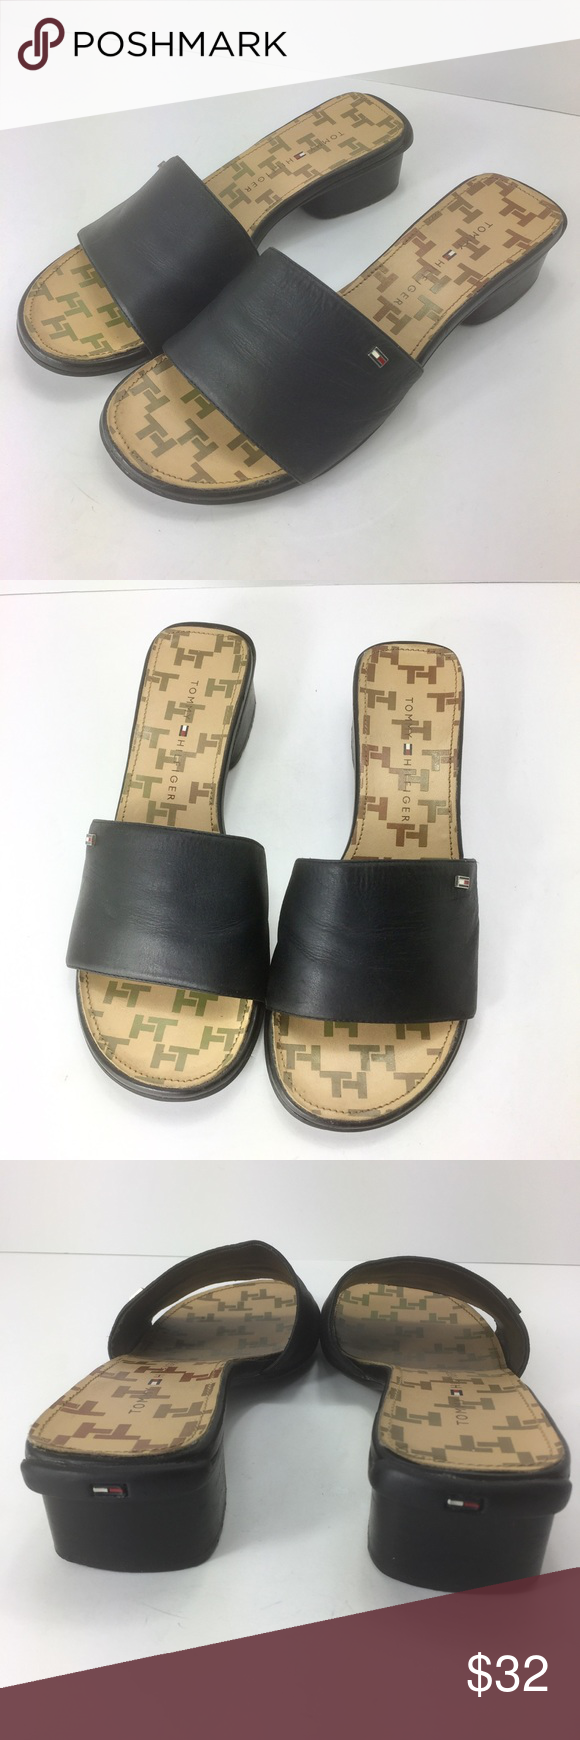 Pre-owned - Leather sandals Tommy Hilfiger FzCSy